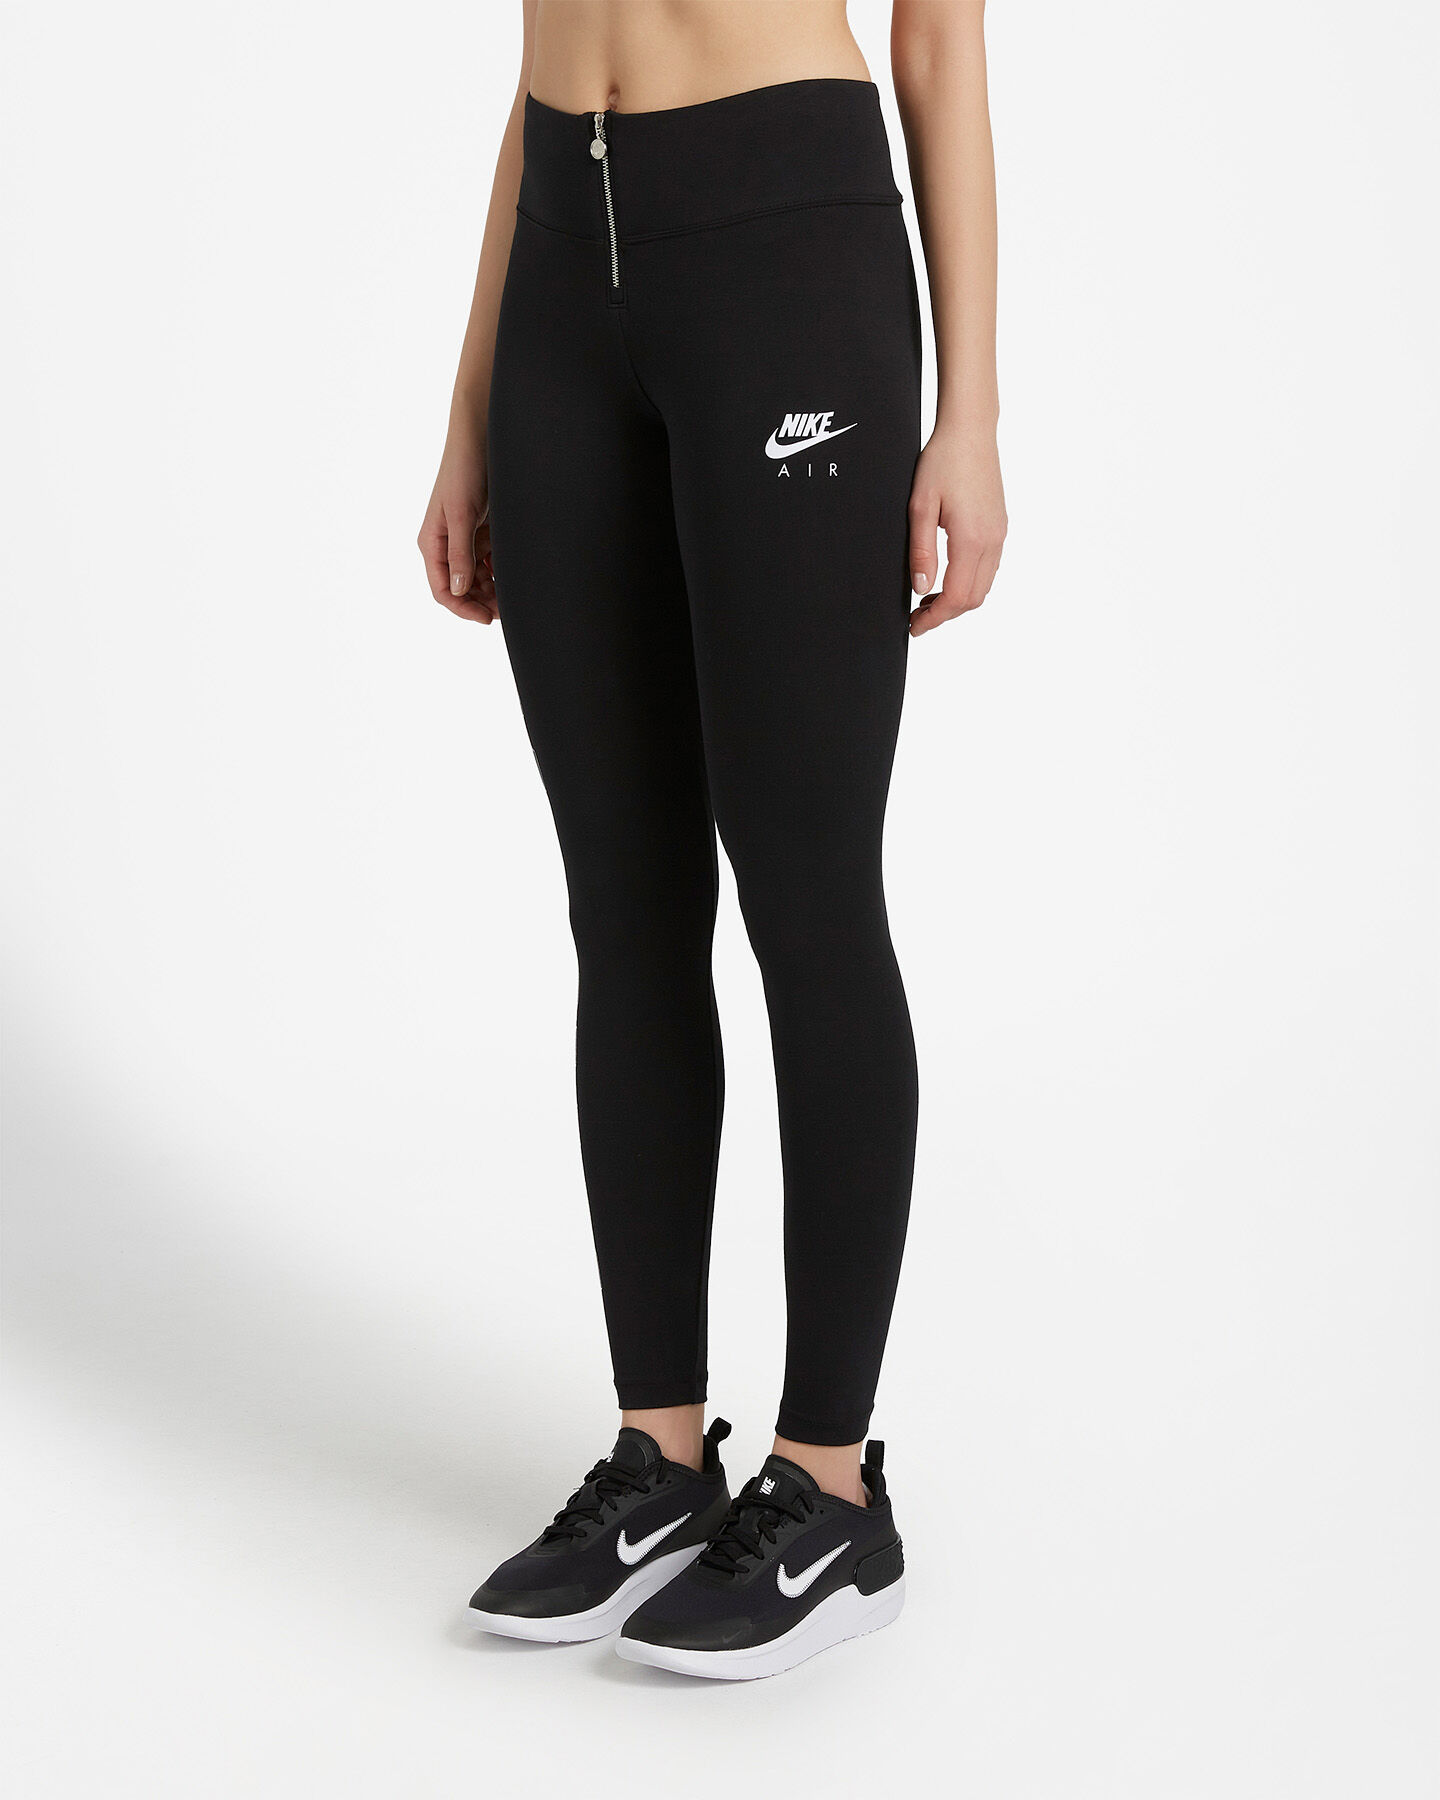 Leggings NIKE AIR JSTRETCH W S5164670 scatto 2